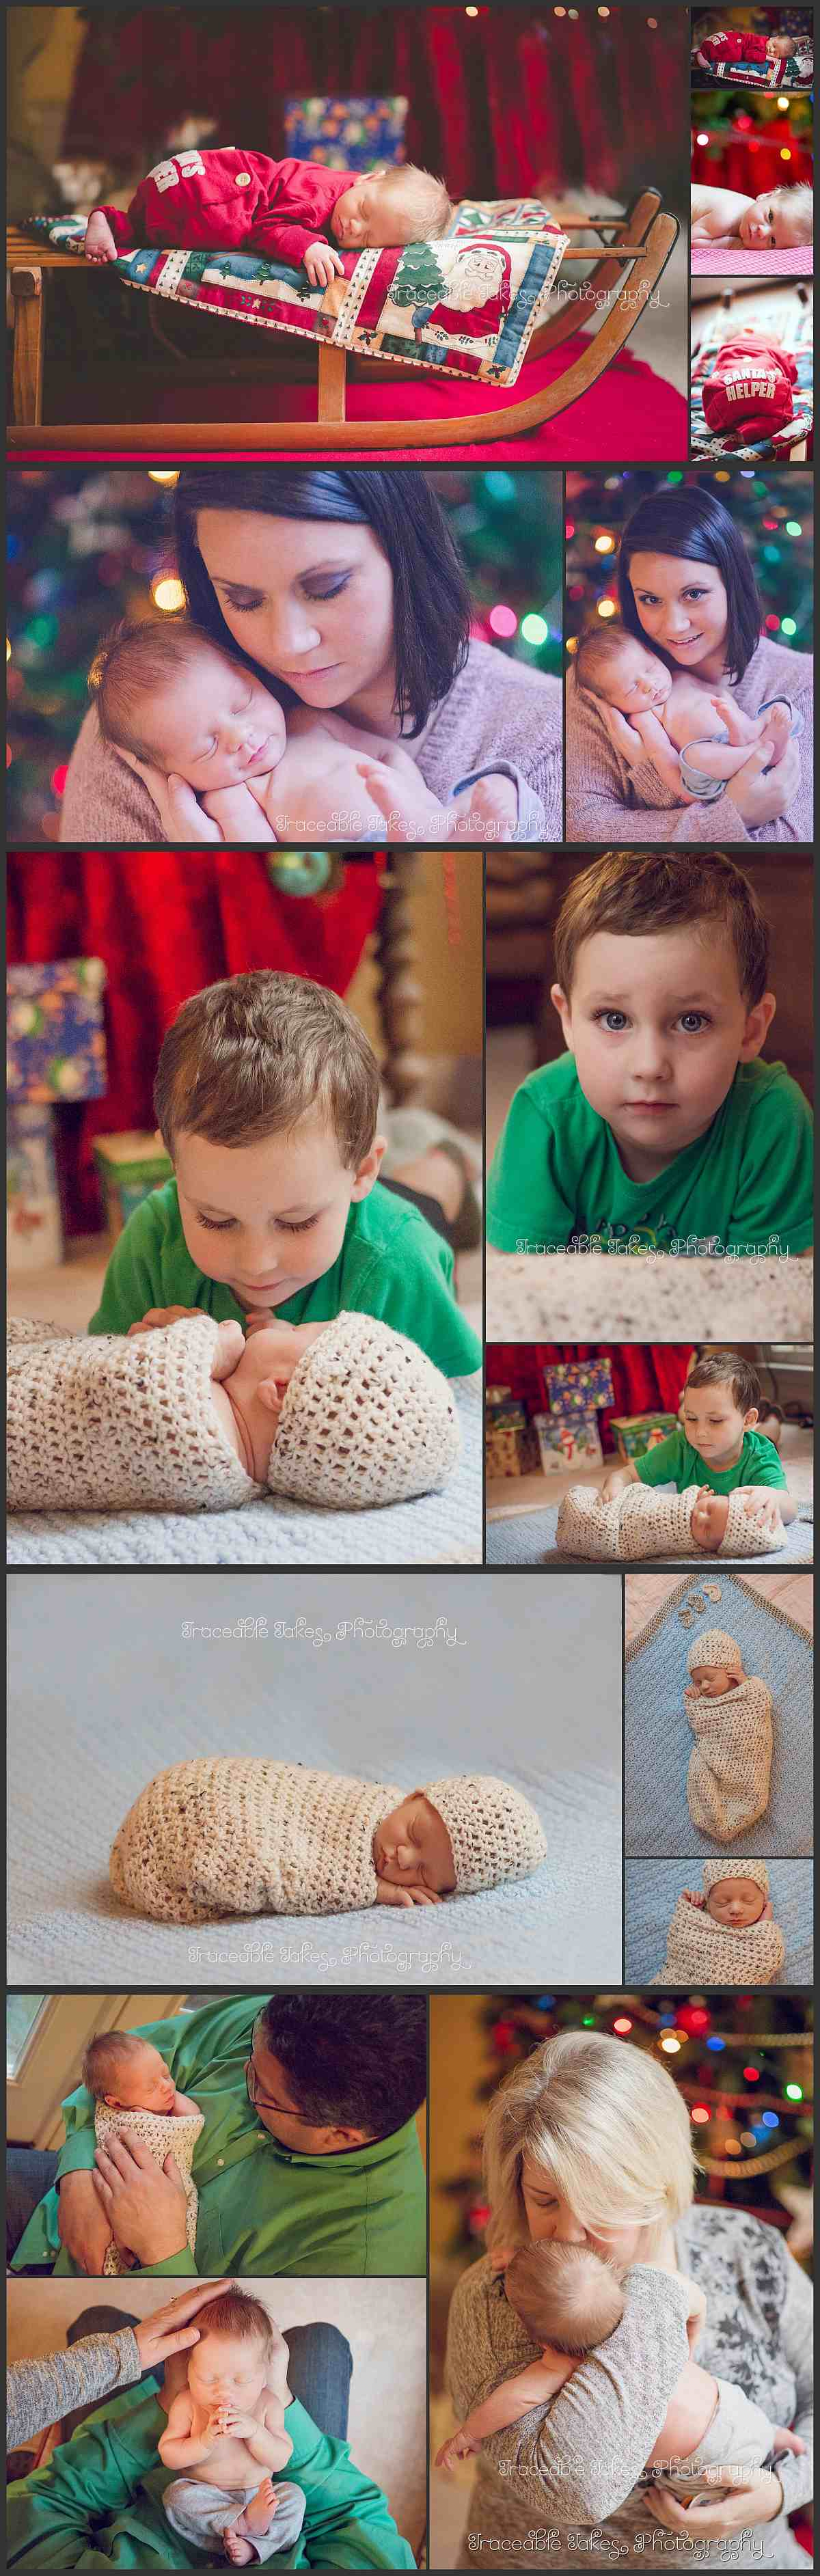 reese-newborn-christmas-traceabletakes.com_